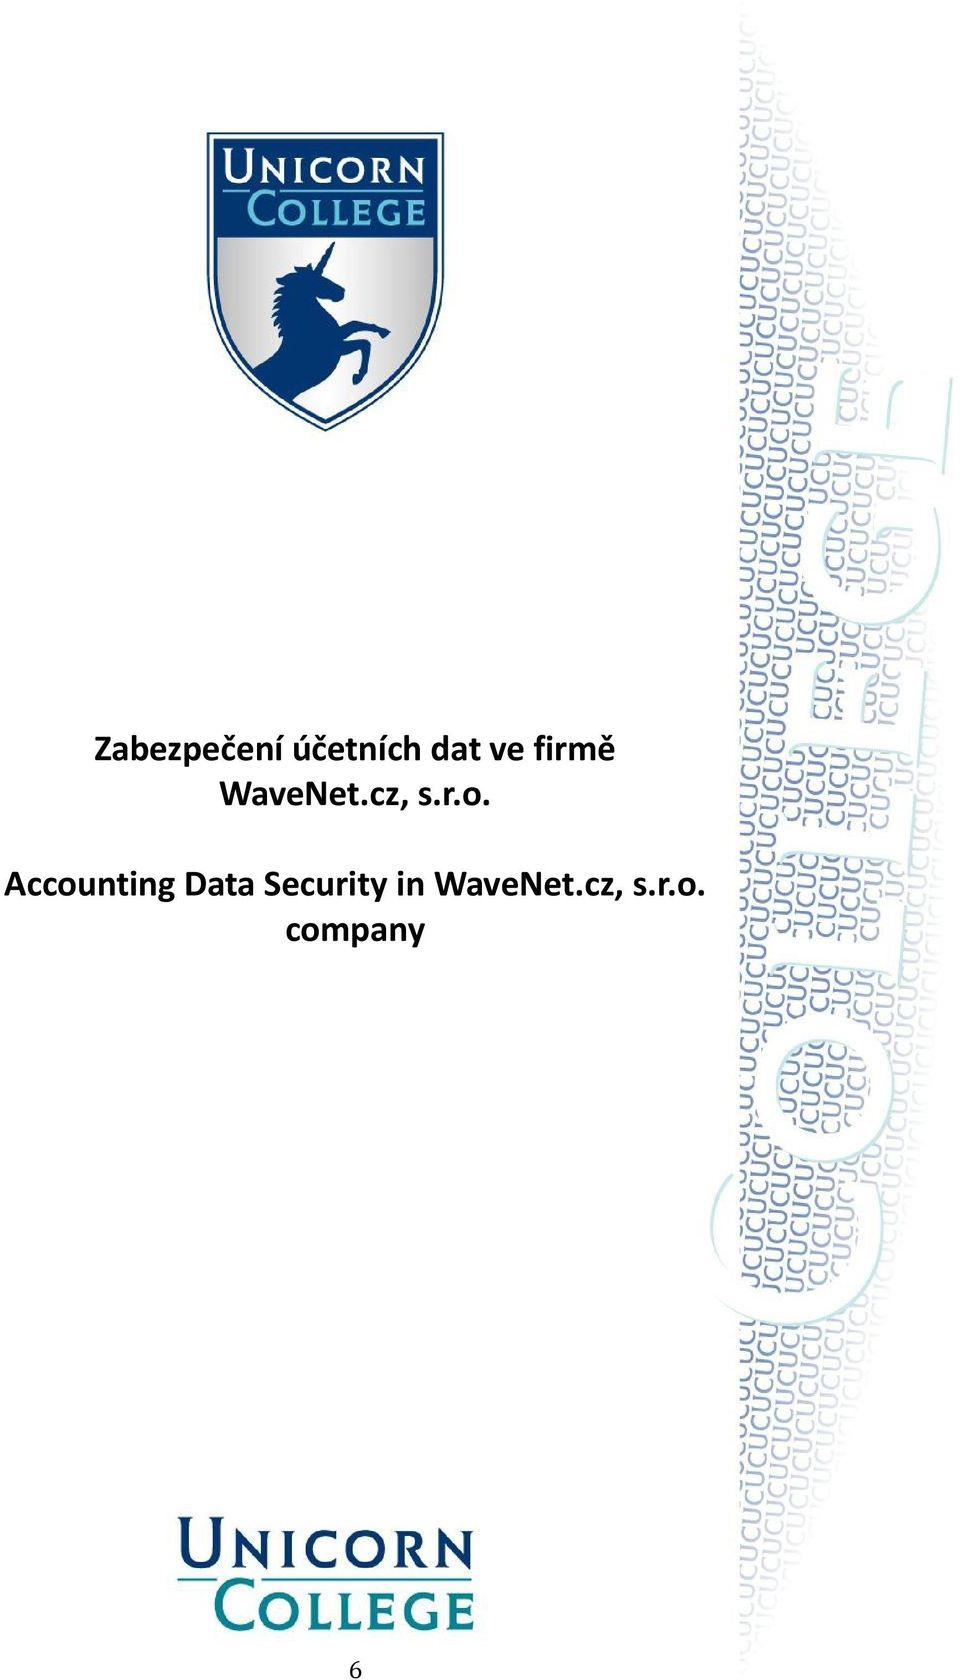 Accounting Data Security in